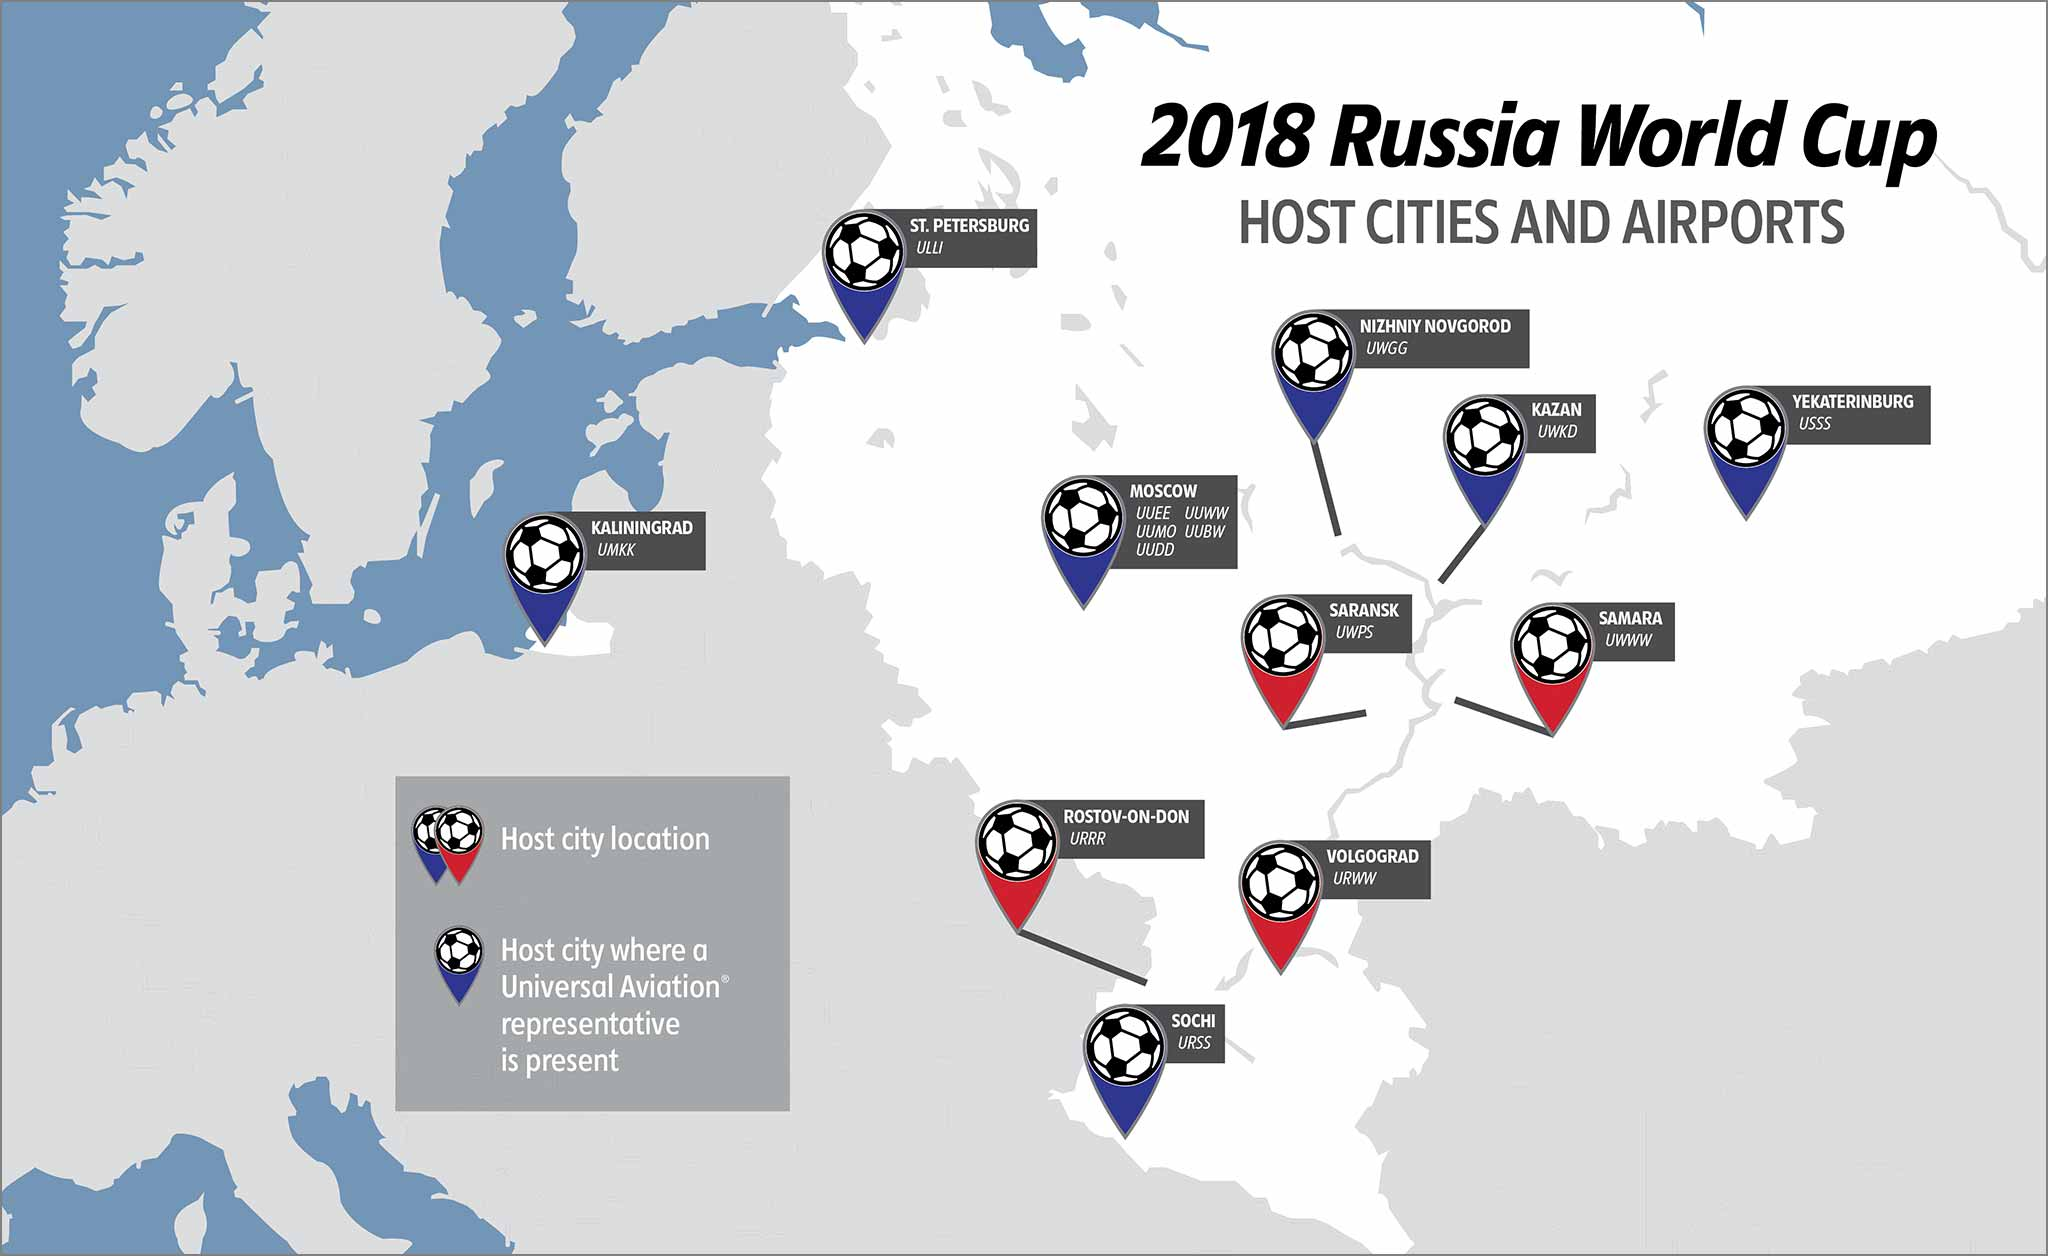 world cup 2018 in russia World cup schedule: teams, cities, stadiums, dates and time.